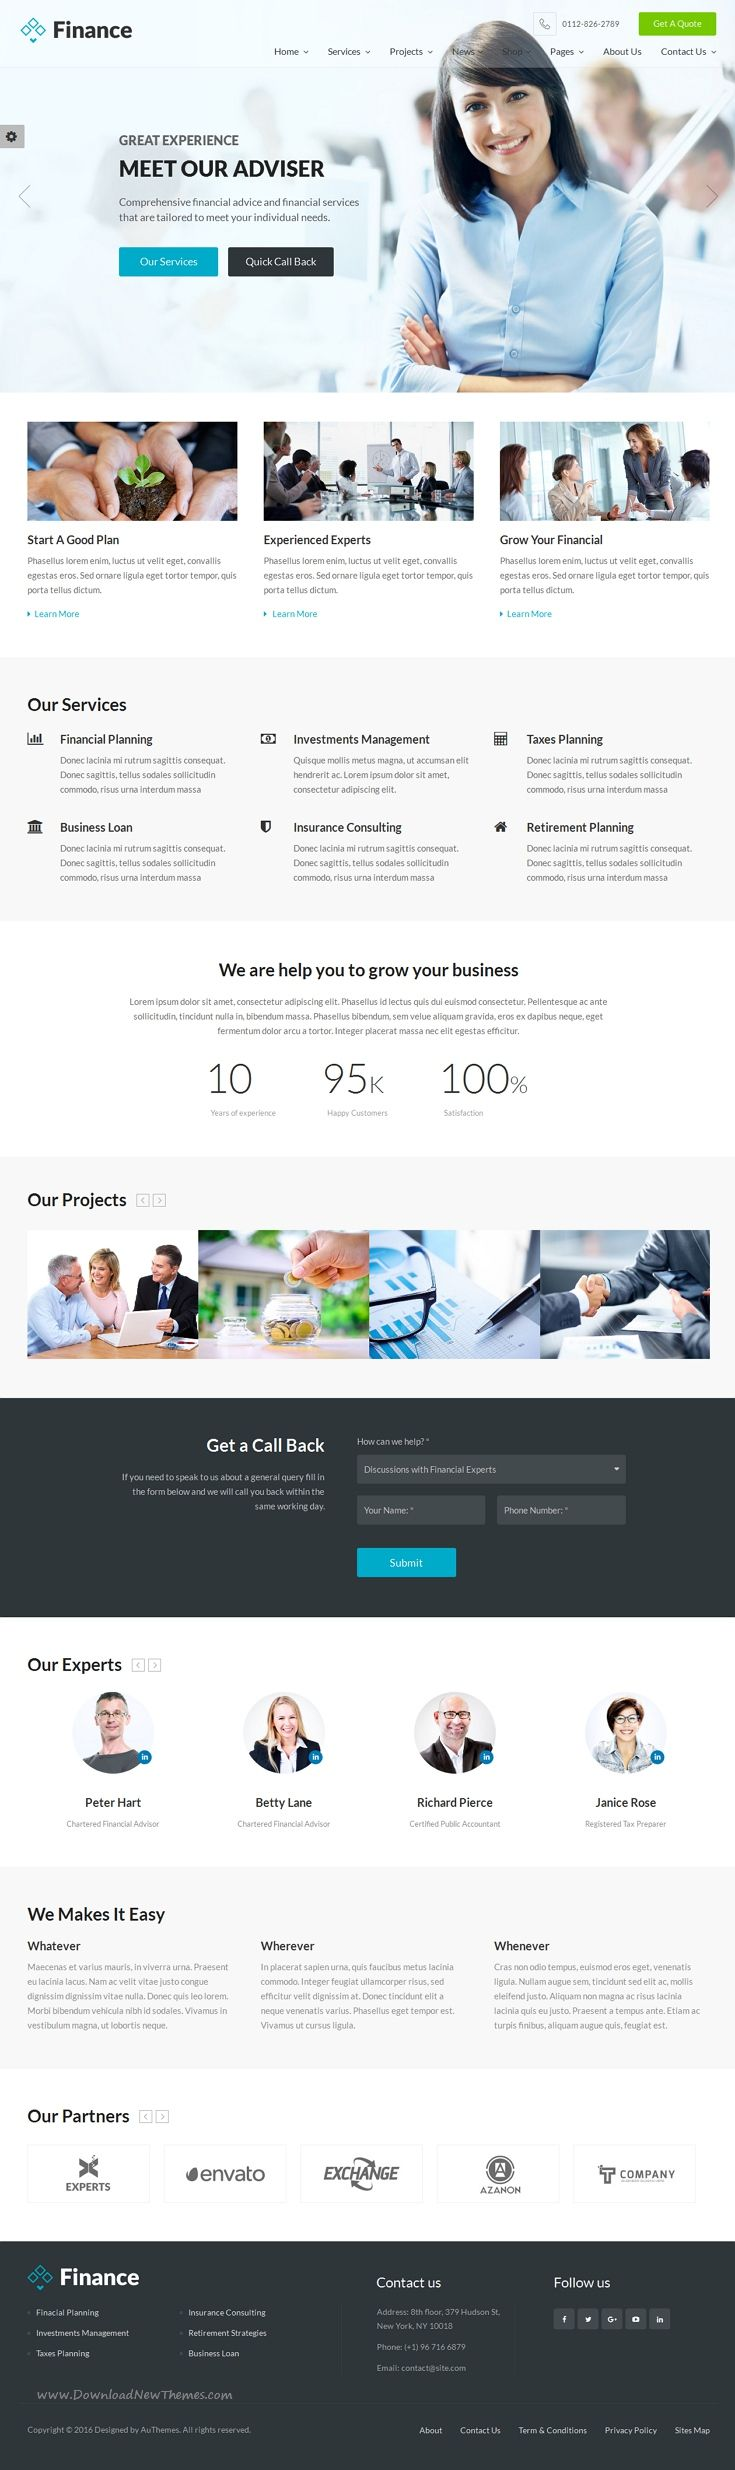 Business consulting website templates images business cards ideas tax website template choice image template design ideas tax consultant website template 3951759 vdyufo maxwellsz wajeb accmission Choice Image